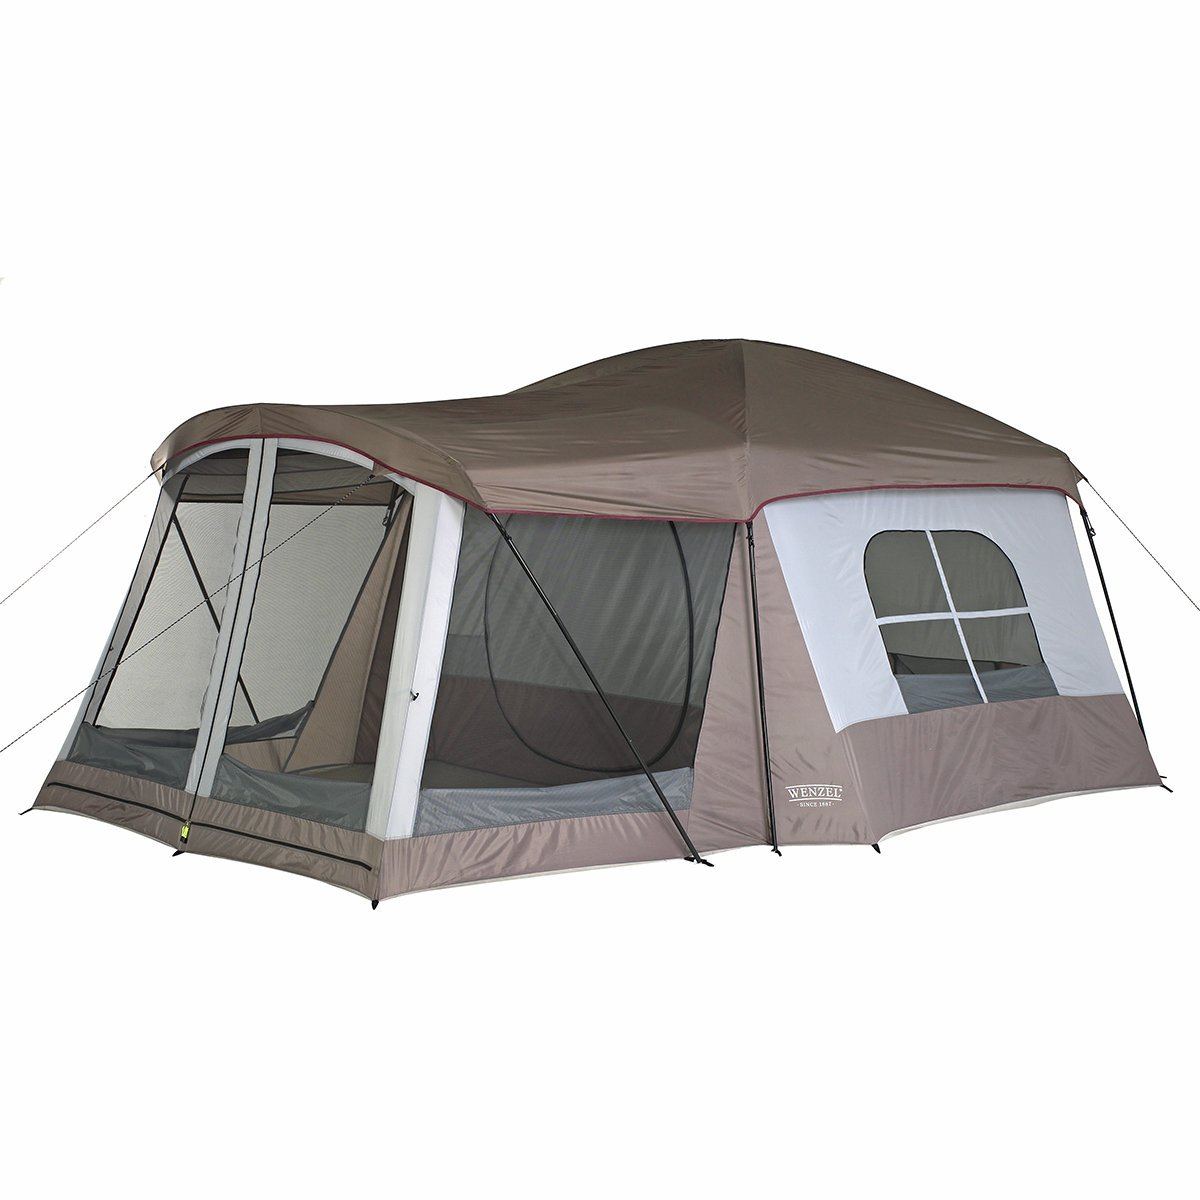 Wenzel Klondike Eight-Person Family Cabin Dome Tent Review - Traveling Monarch  sc 1 st  Traveling Monarch & Wenzel Klondike Eight-Person Family Cabin Dome Tent Review ...